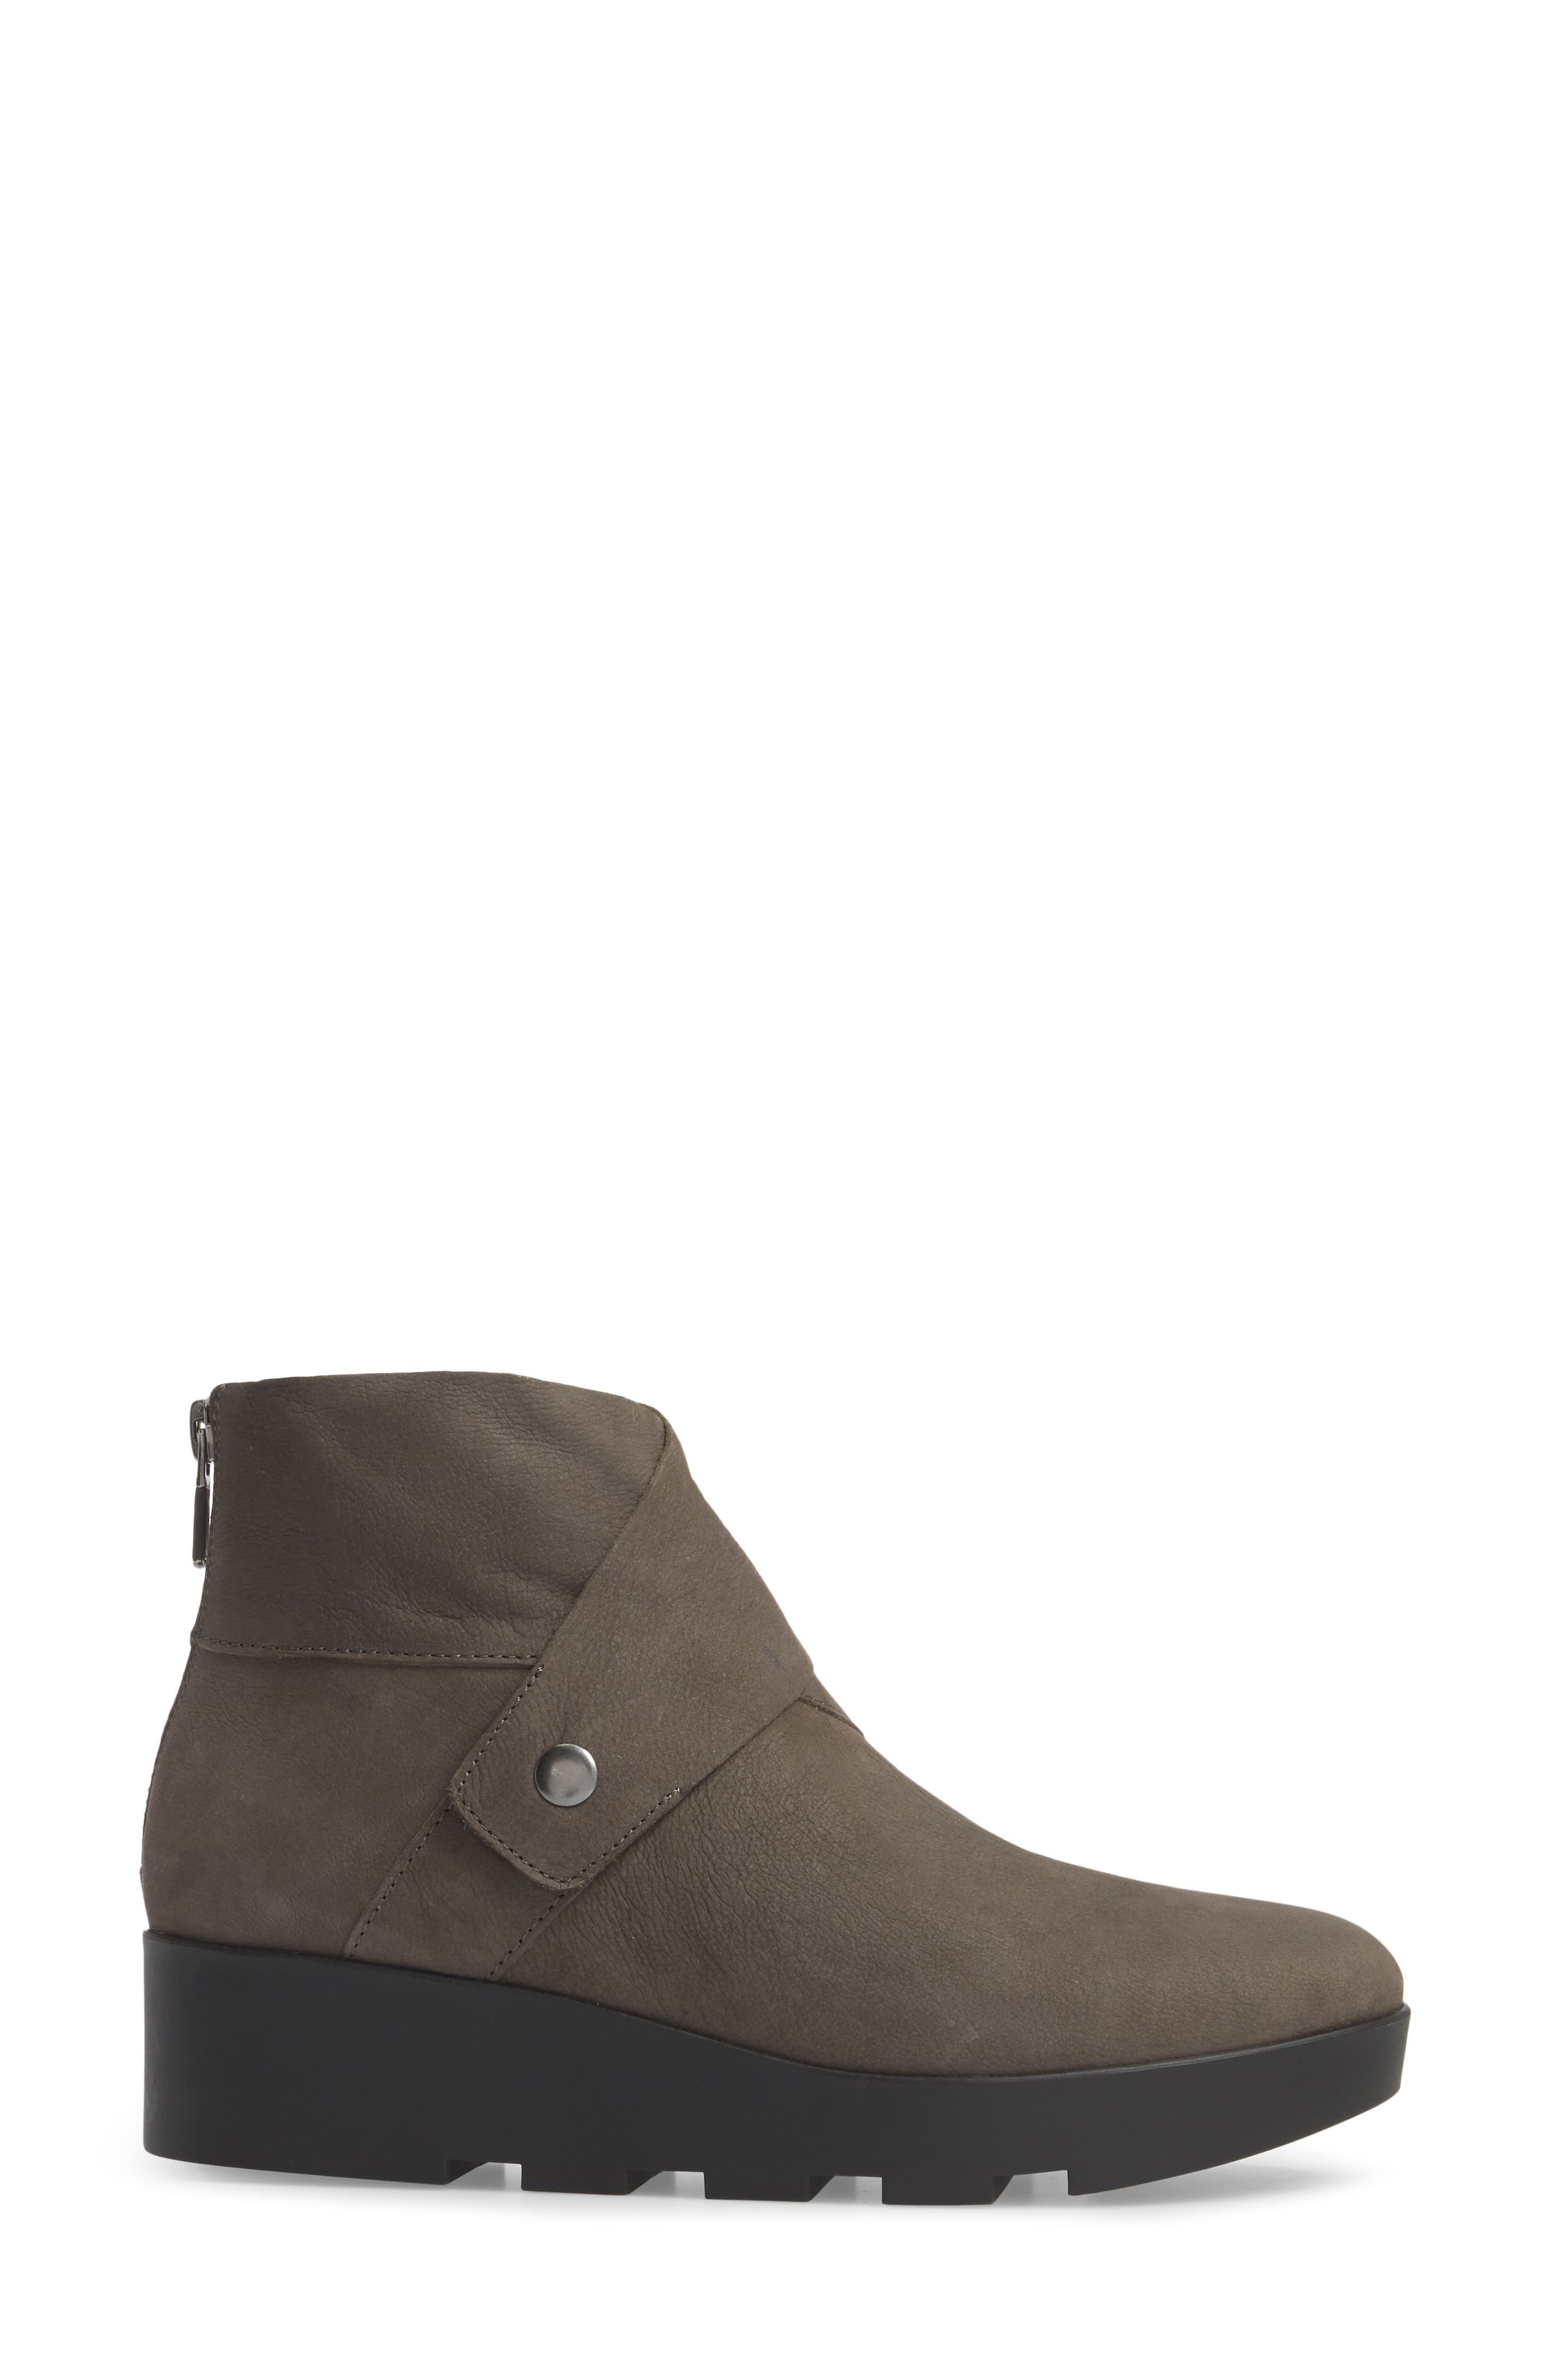 Tread Wedge Bootie,                             Alternate thumbnail 3, color,                             Graphite Nubuck